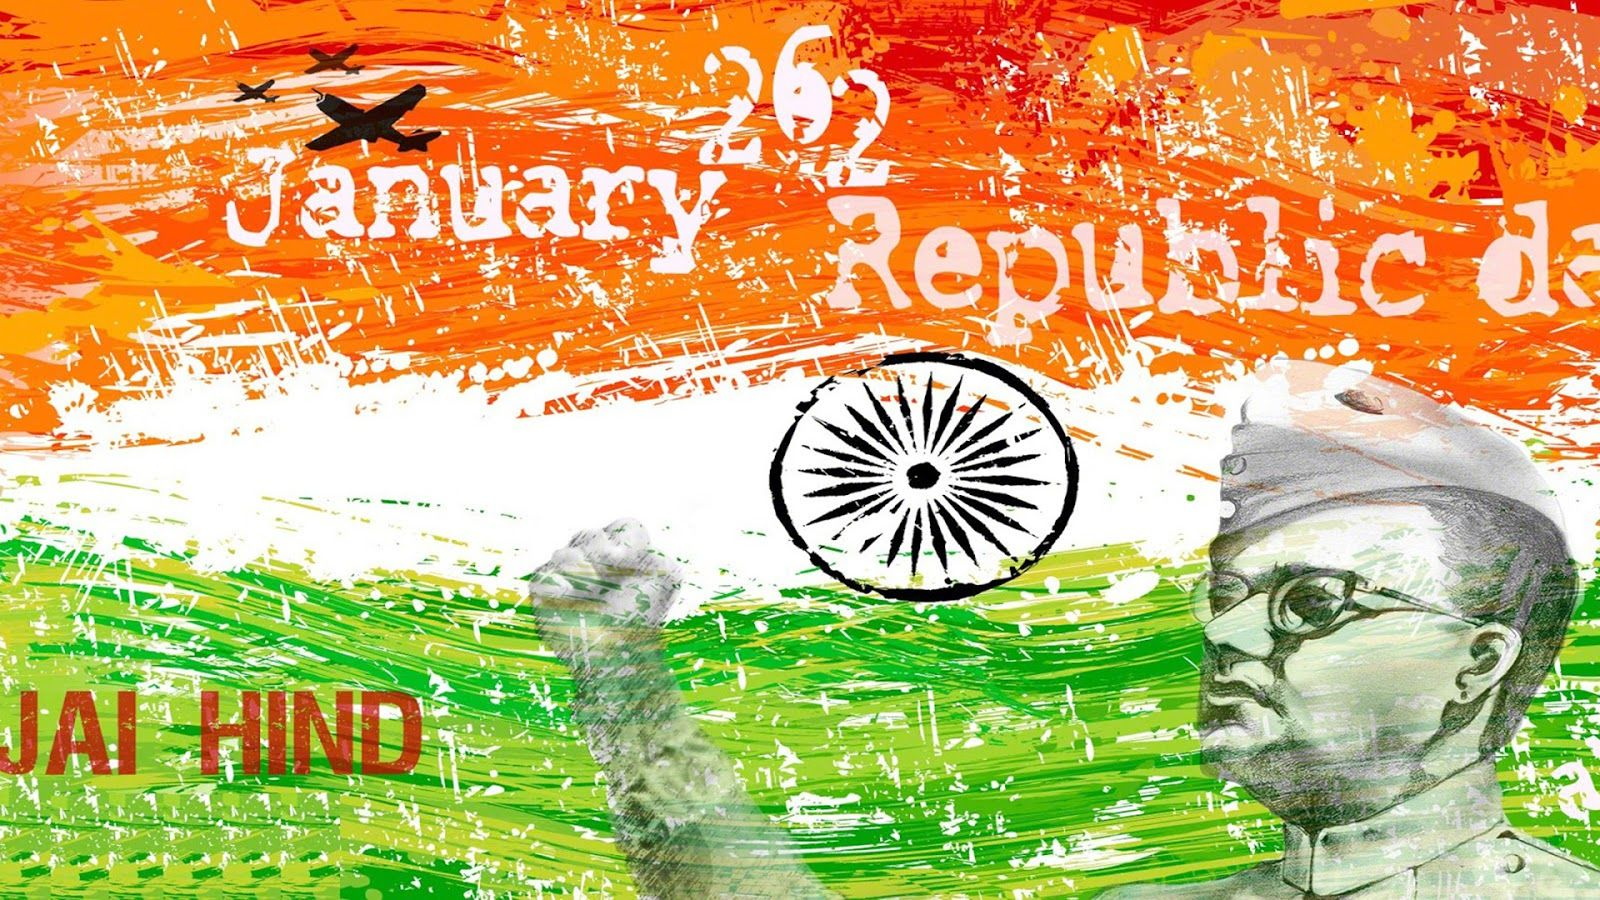 Happy Republic Day Wallpapers Hd Download Free 1080p Happy Republic Day Wallpaper Republic Day India Republic Day